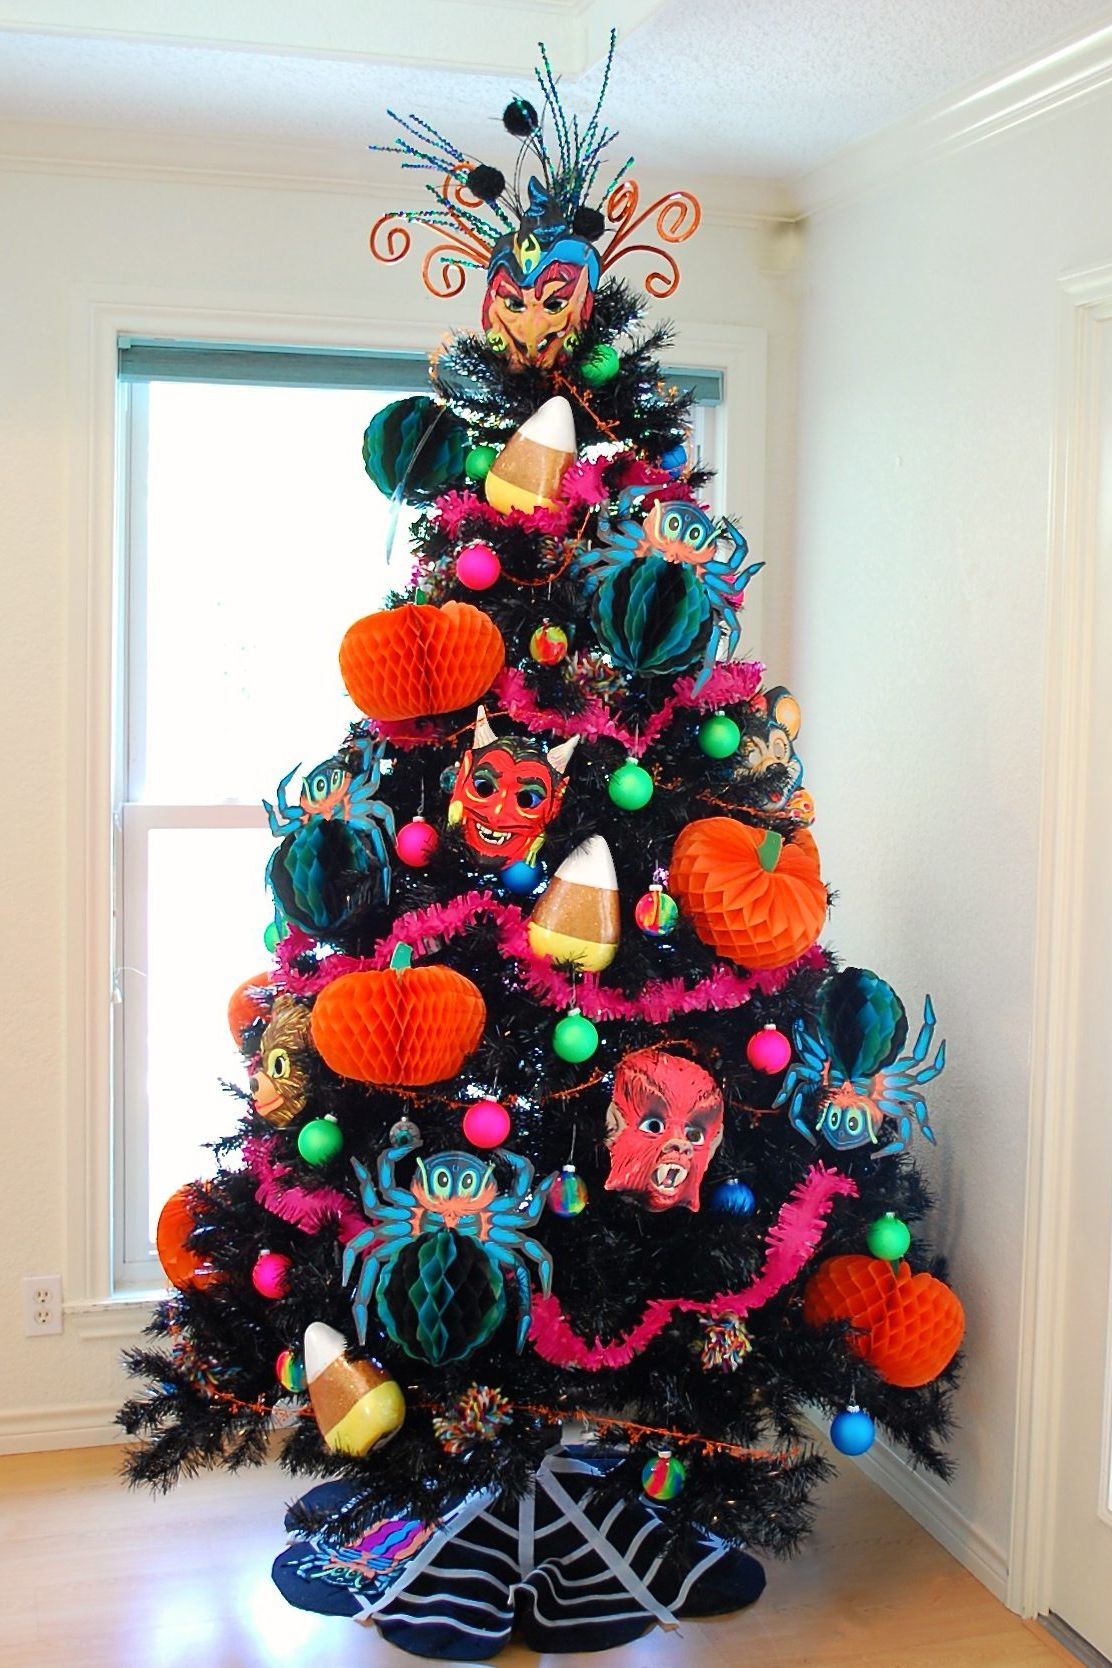 15 halloween tree diy decorations how to make a halloween tree and 15 halloween tree diy decorations how to make a halloween tree and ornaments solutioingenieria Image collections